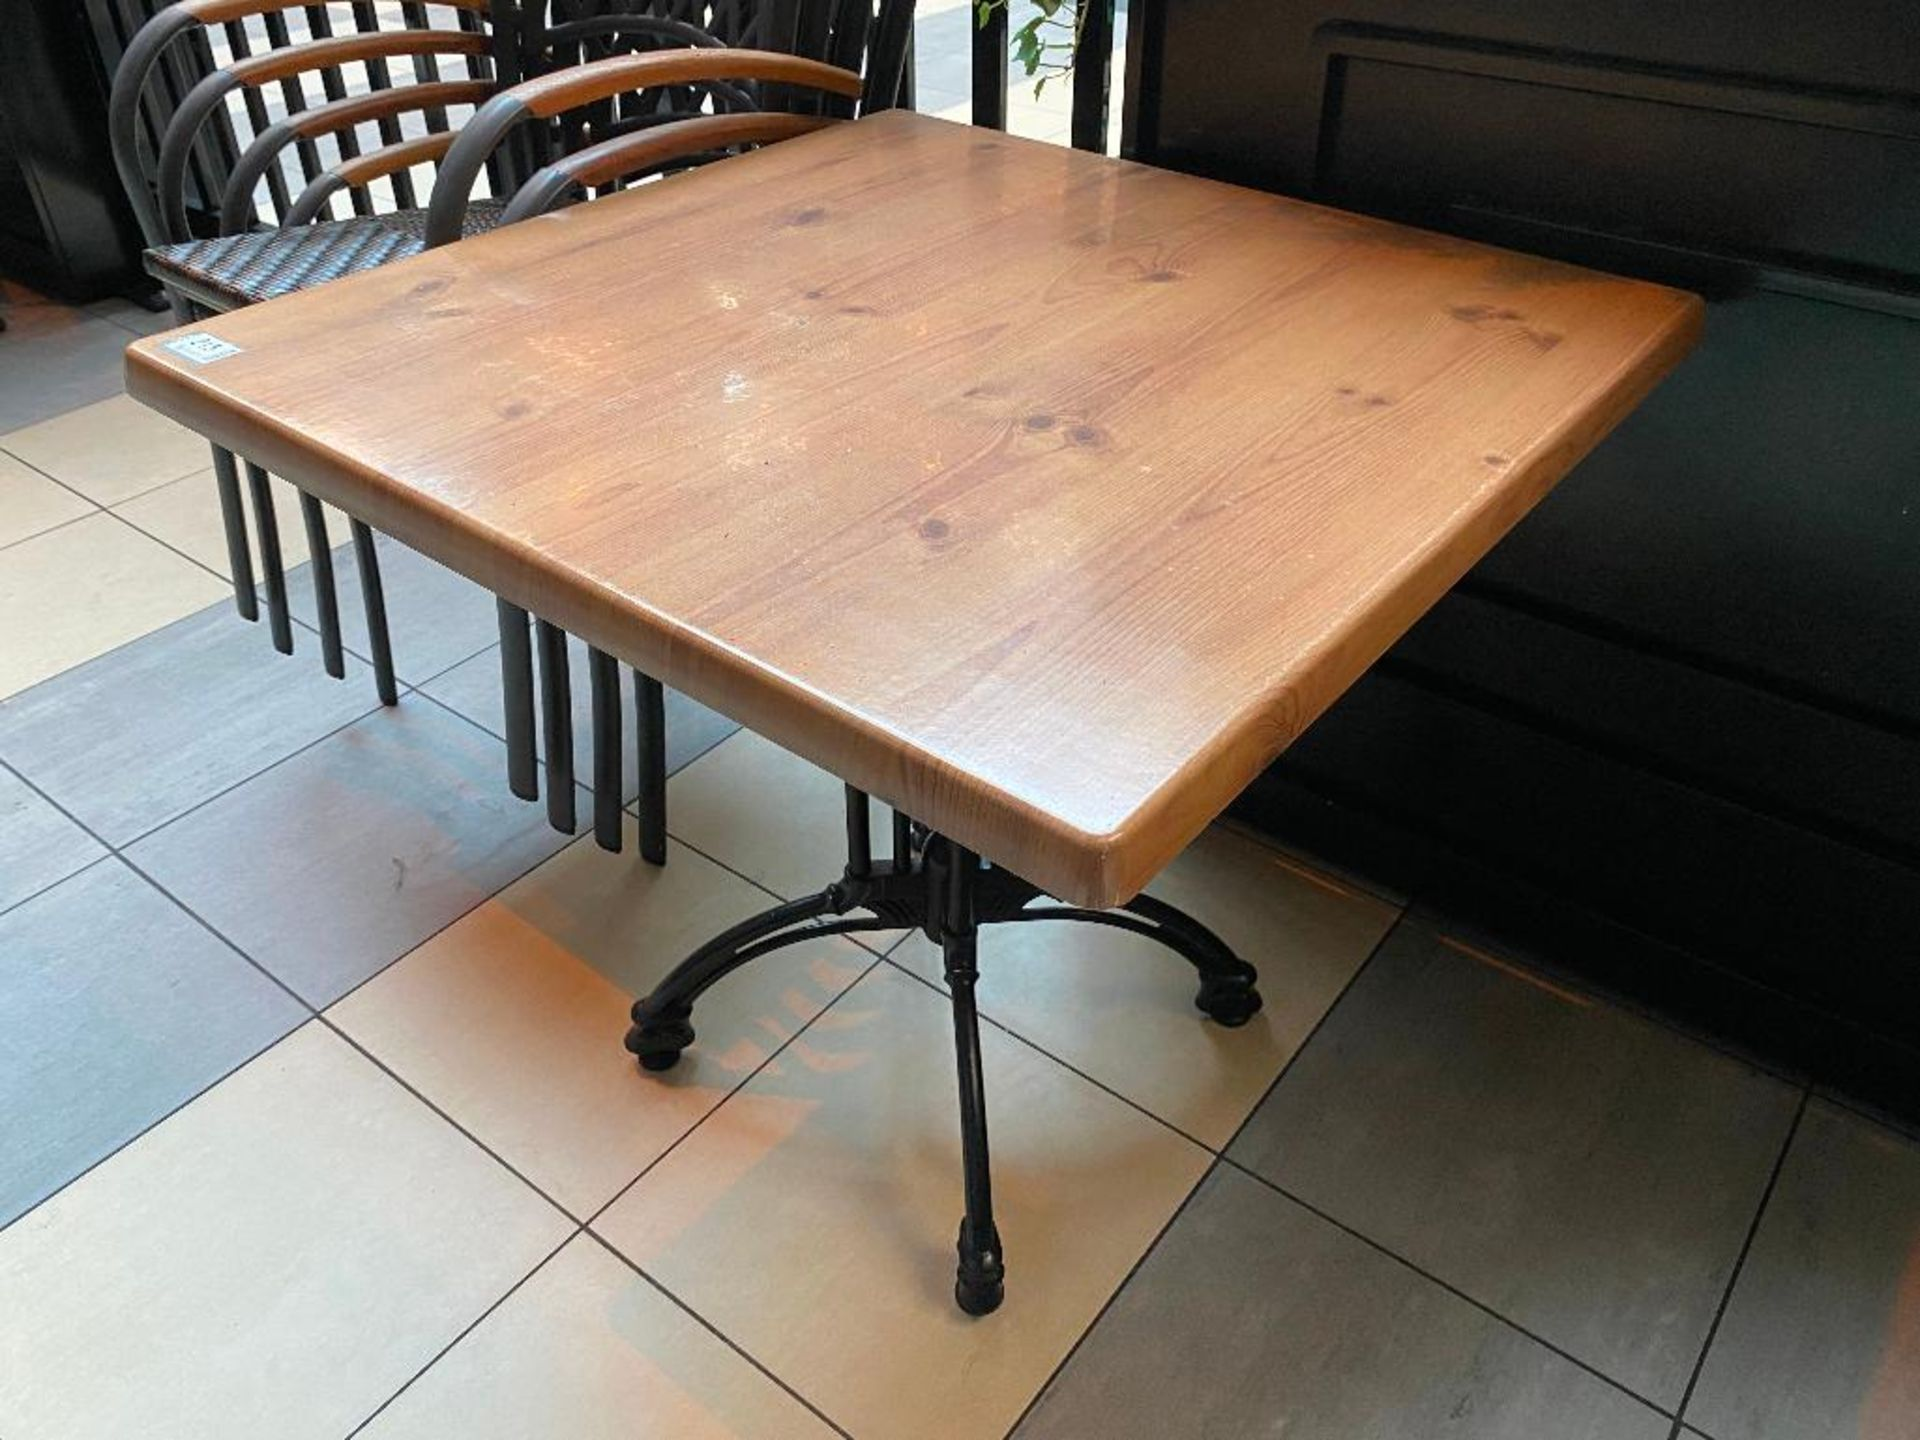 """TOPALIT 31"""" X 31"""" PATIO TABLE WITH 4 CHAIRS - Image 4 of 4"""